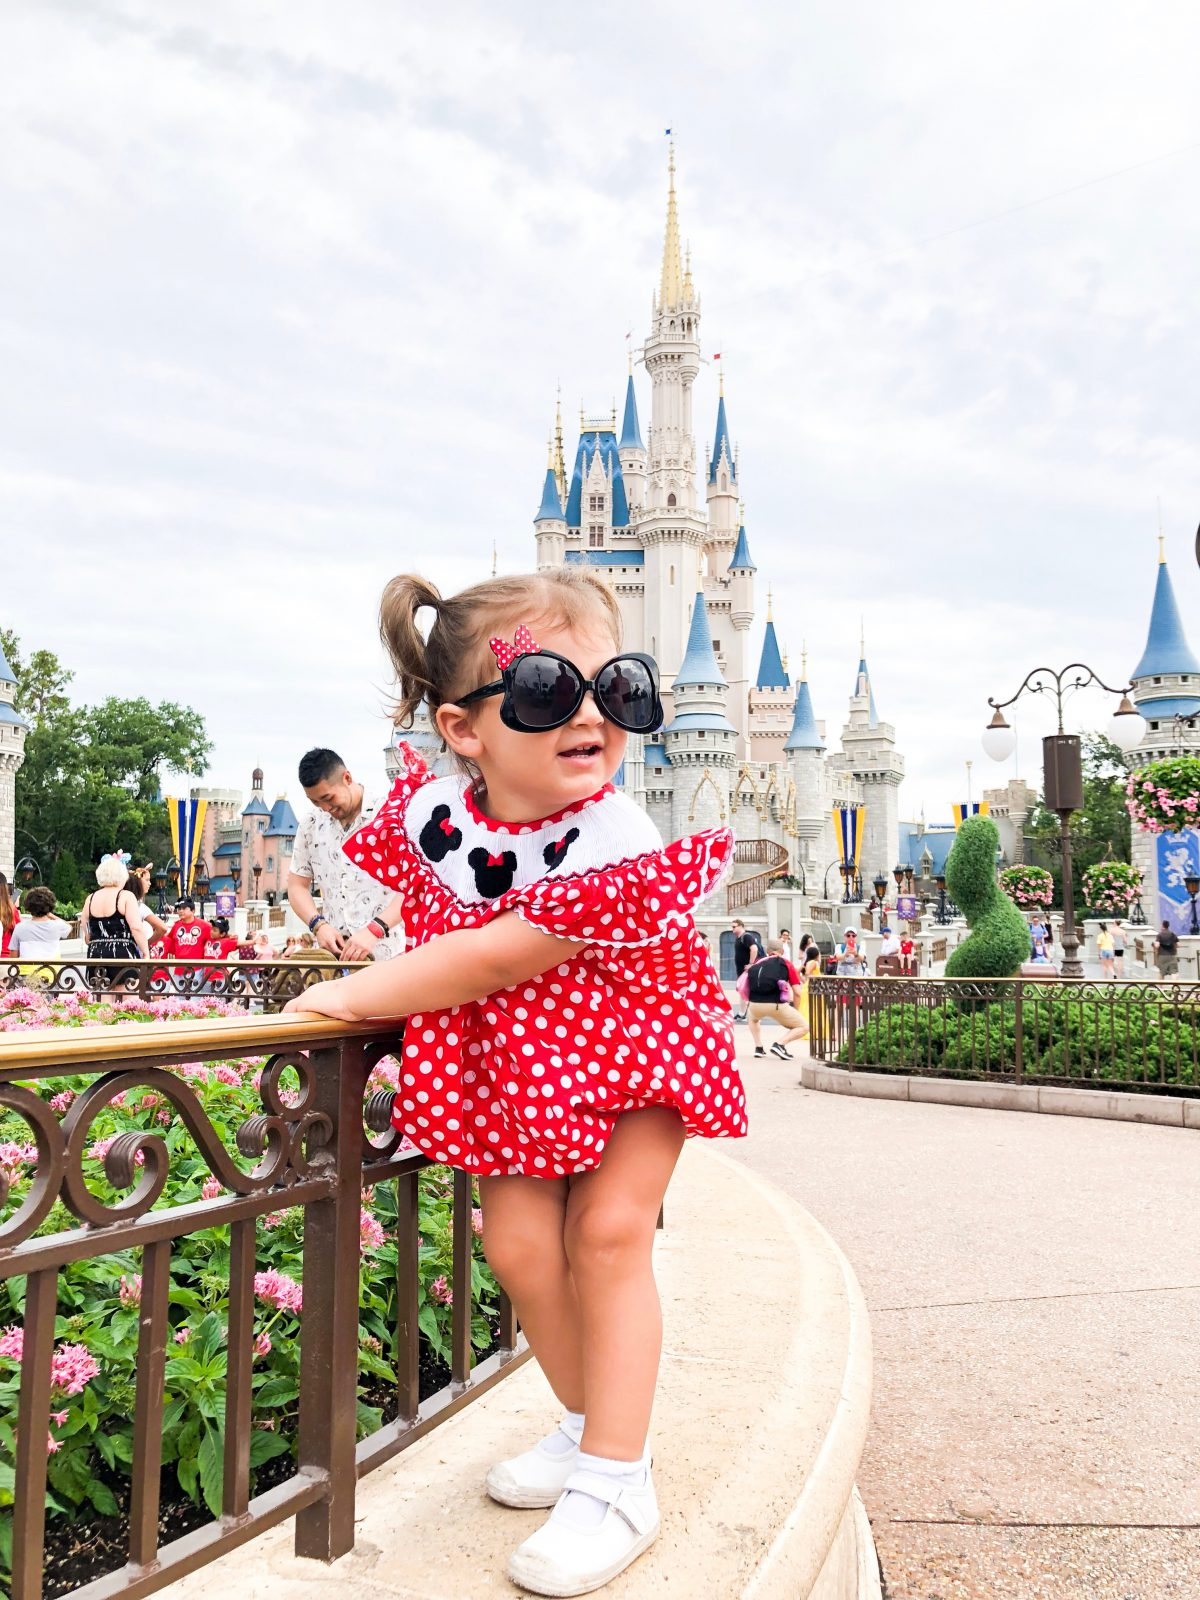 The Top 10 Photos To Take at Disney World